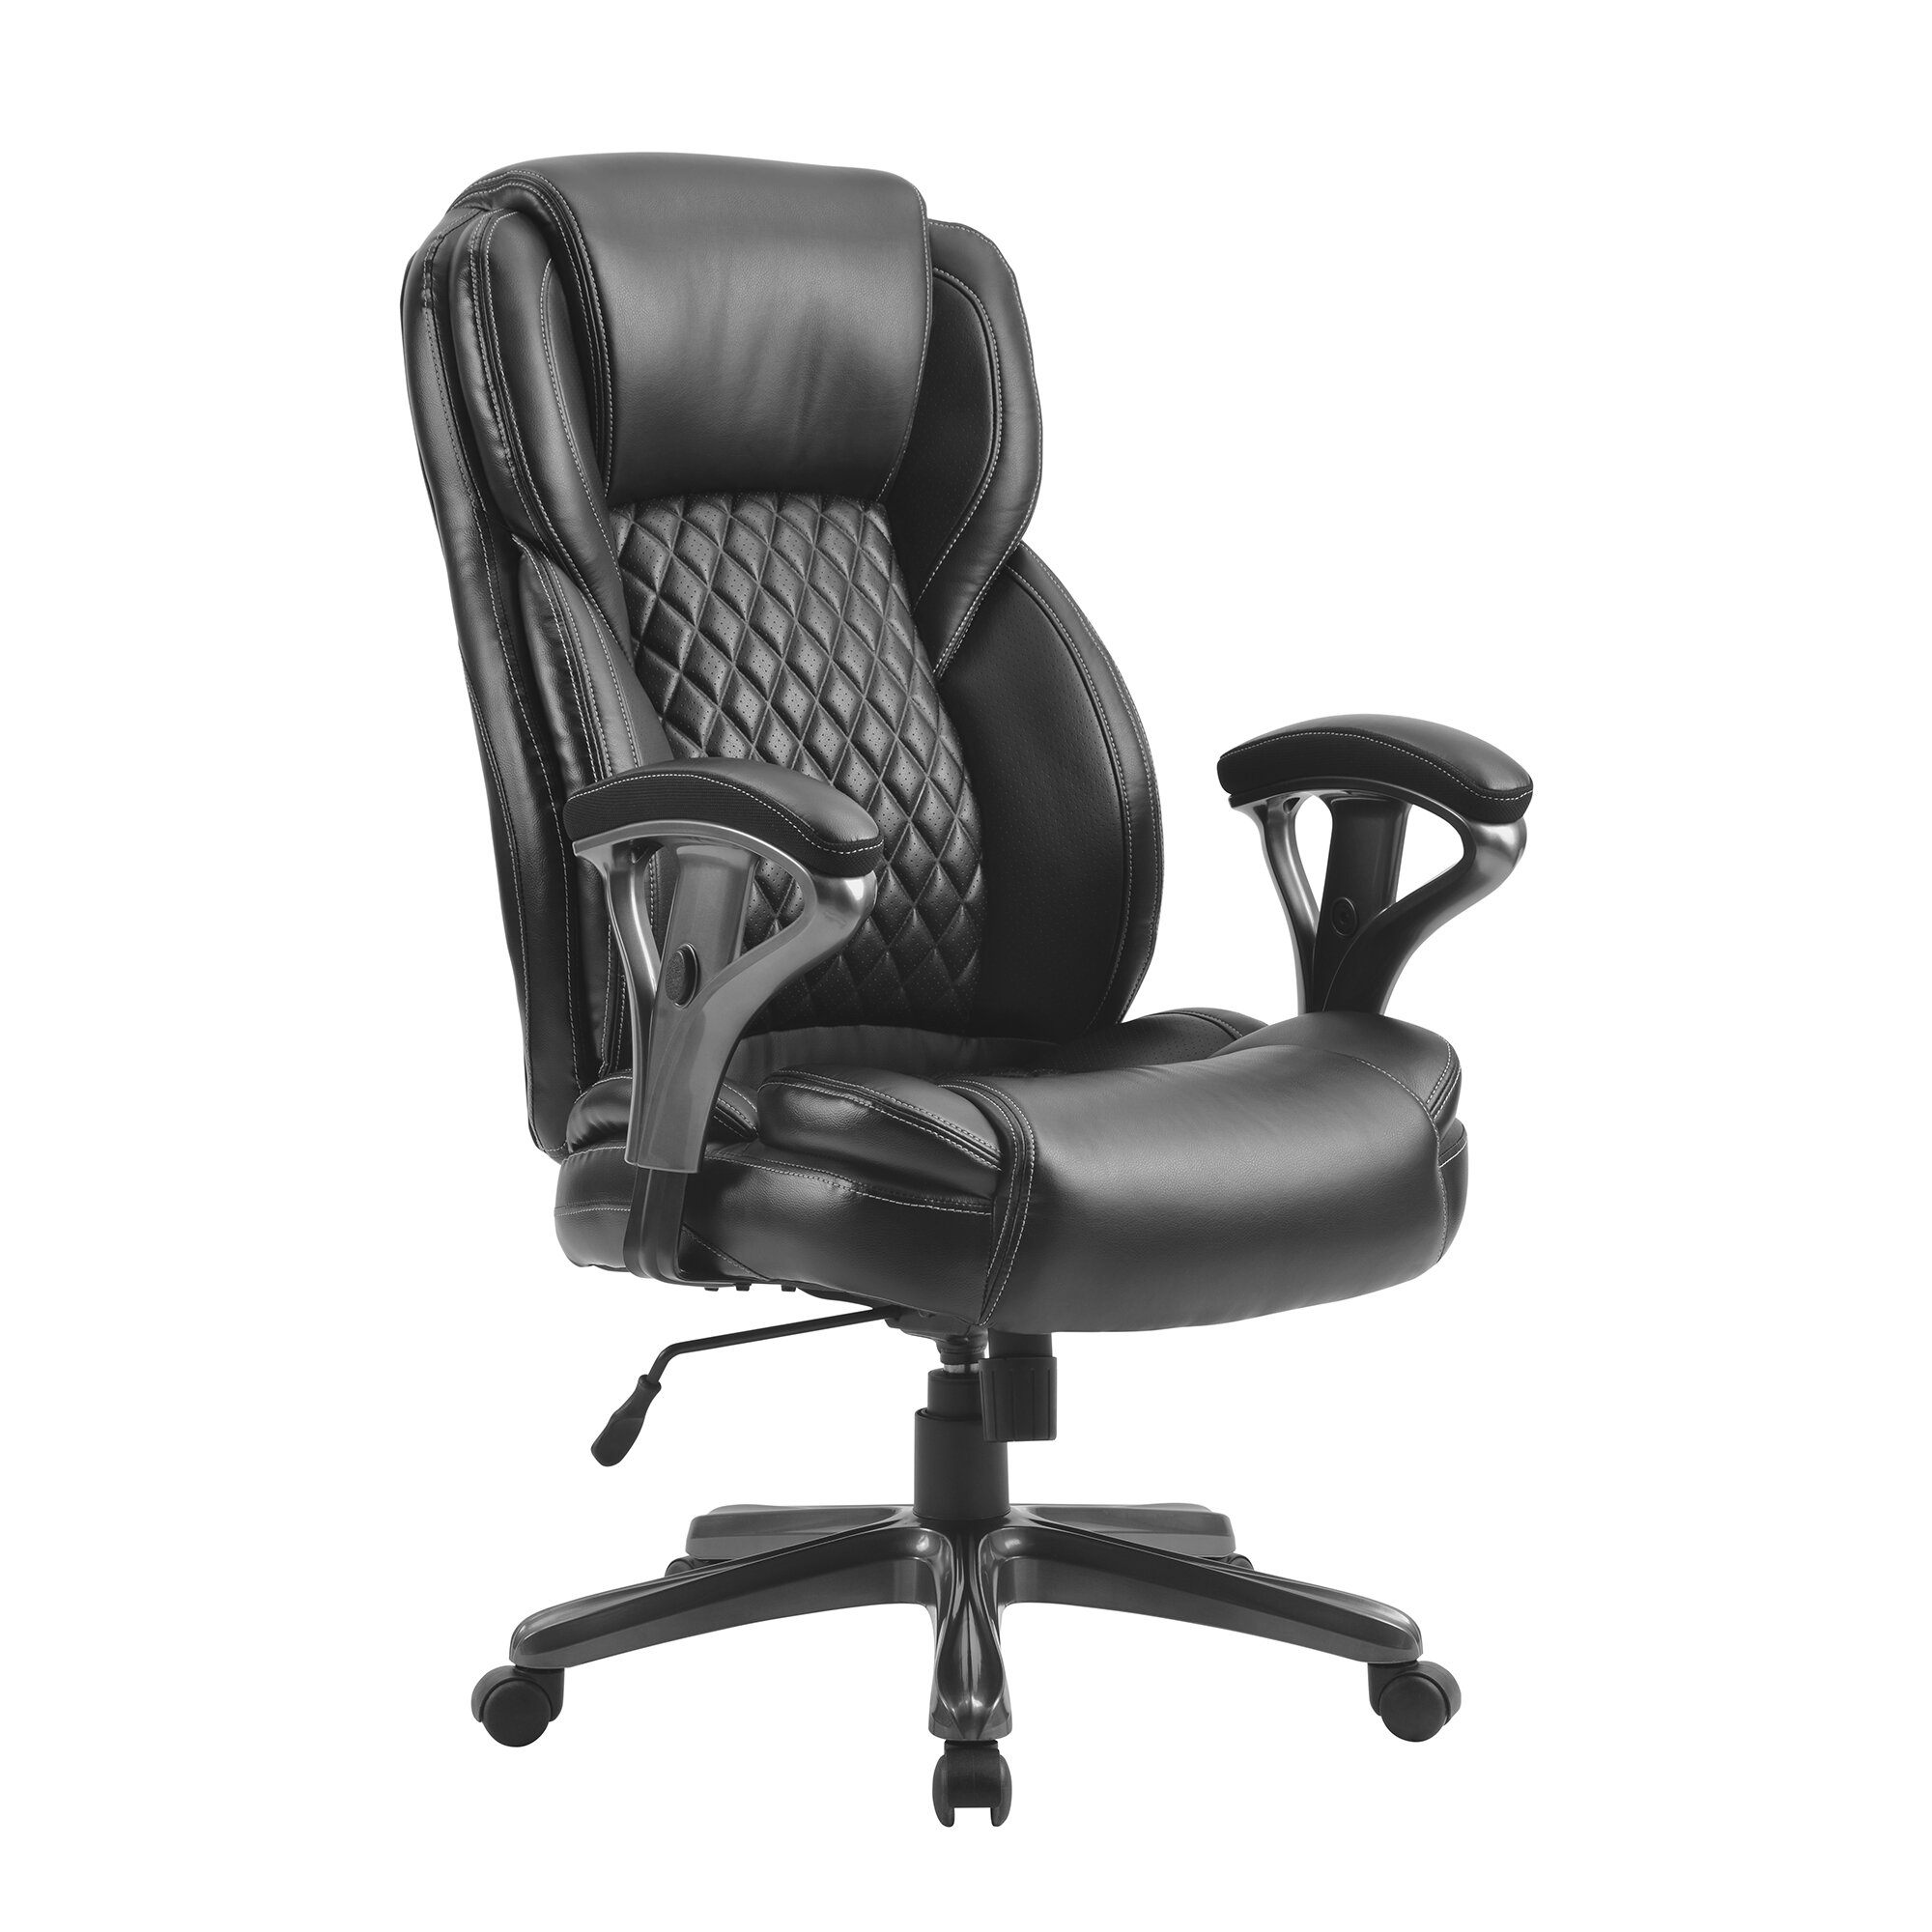 Home Office Large And Tall Pu Leather Office Chair/ergonomic Computer Chair  High Back Pu Executive Chair, Black